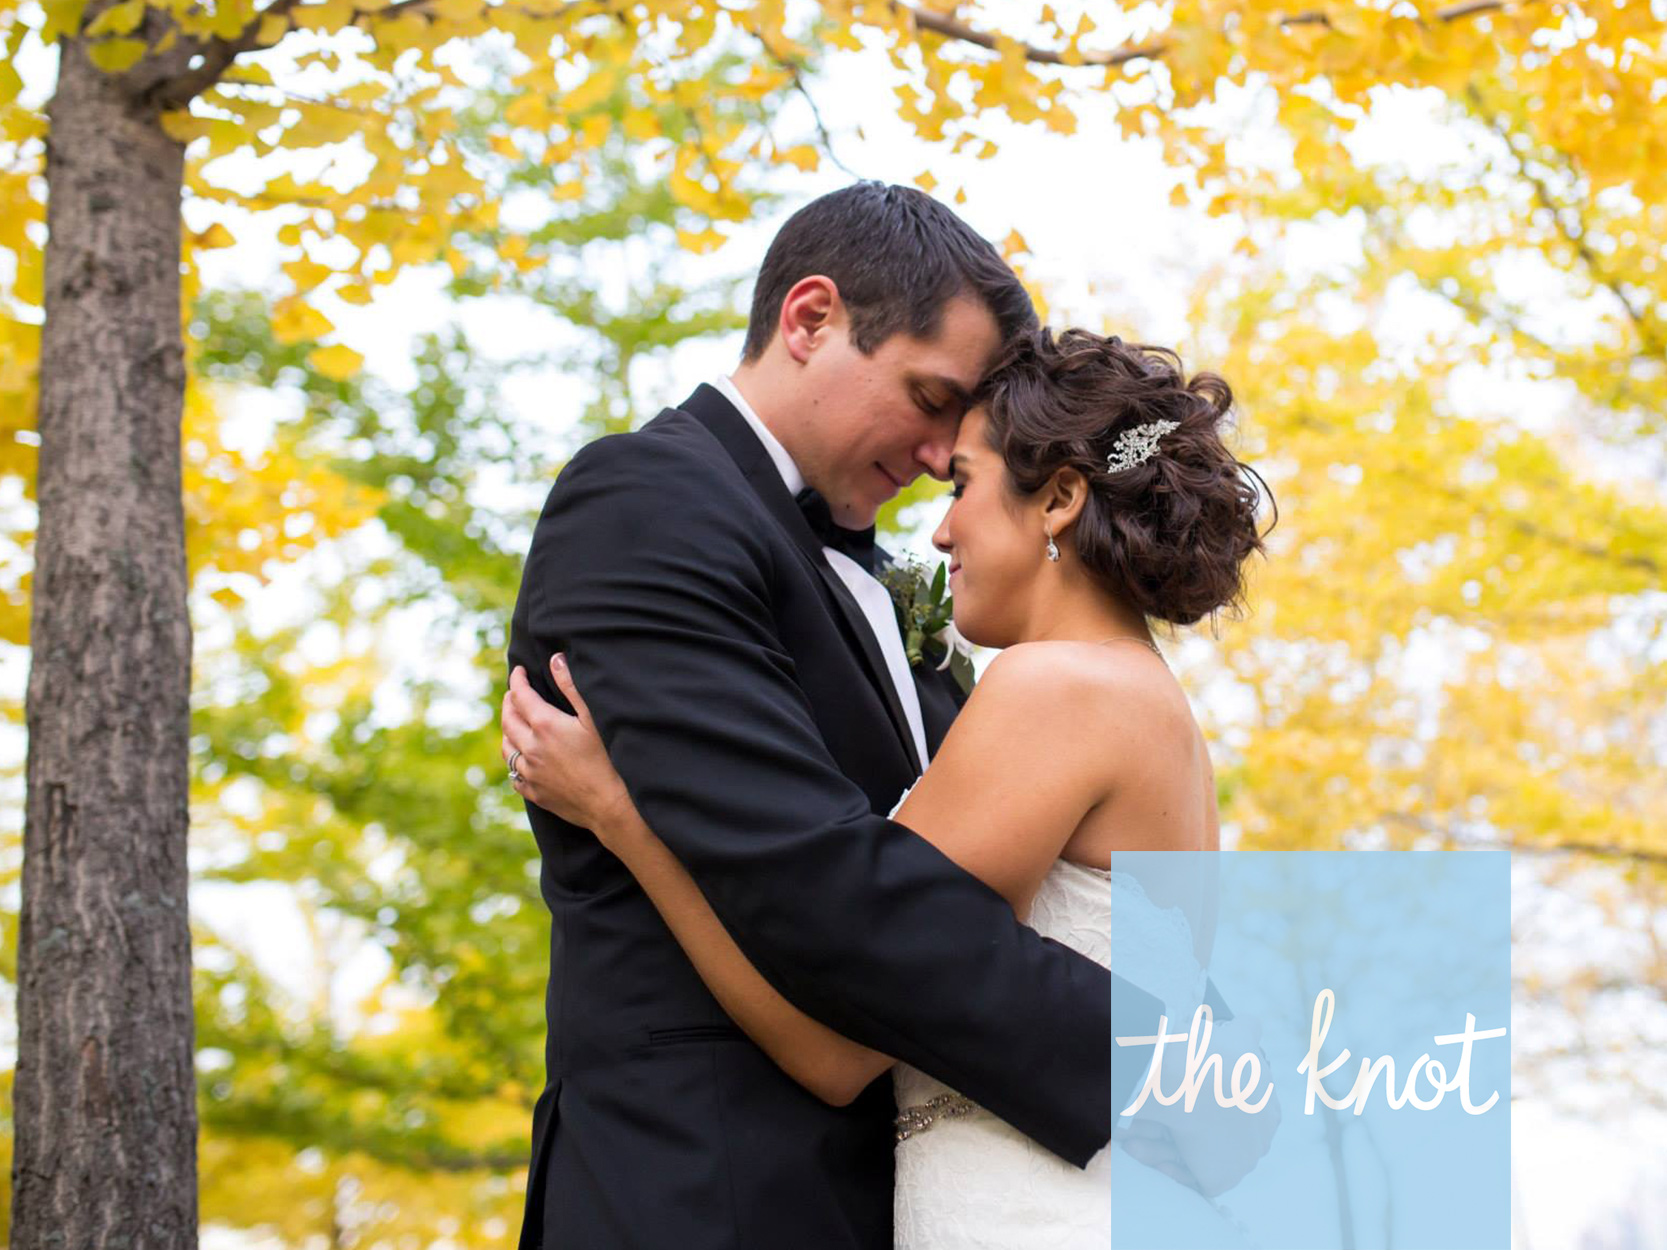 THE KNOT:  A FORMAL MODERN WEDDING